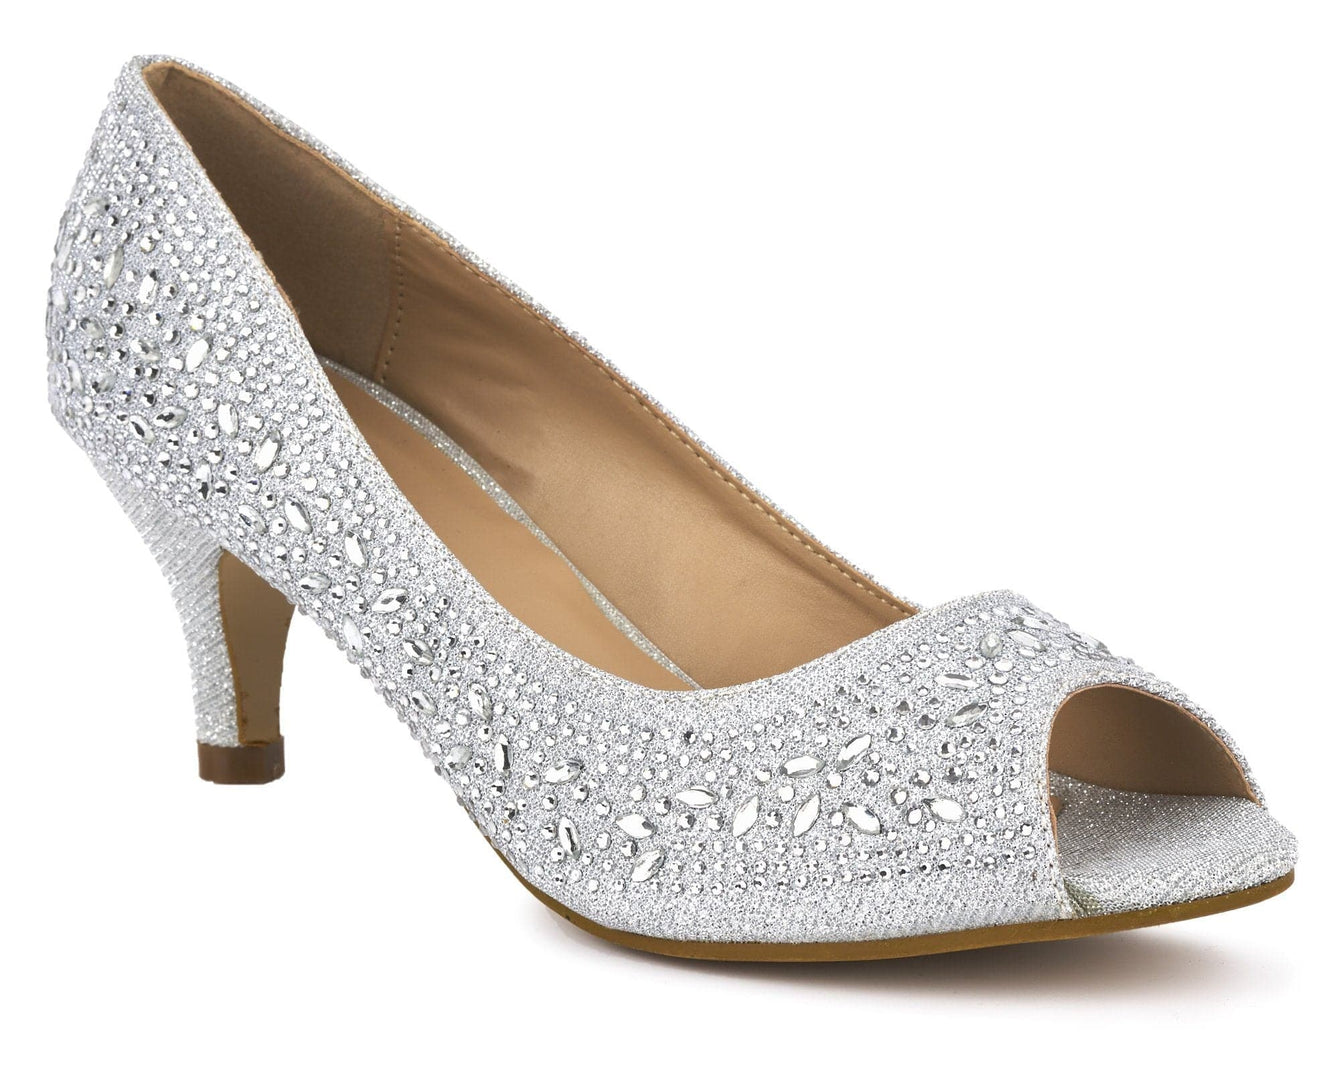 Violetta kitten heel diamante peep toe court shoe in Silver